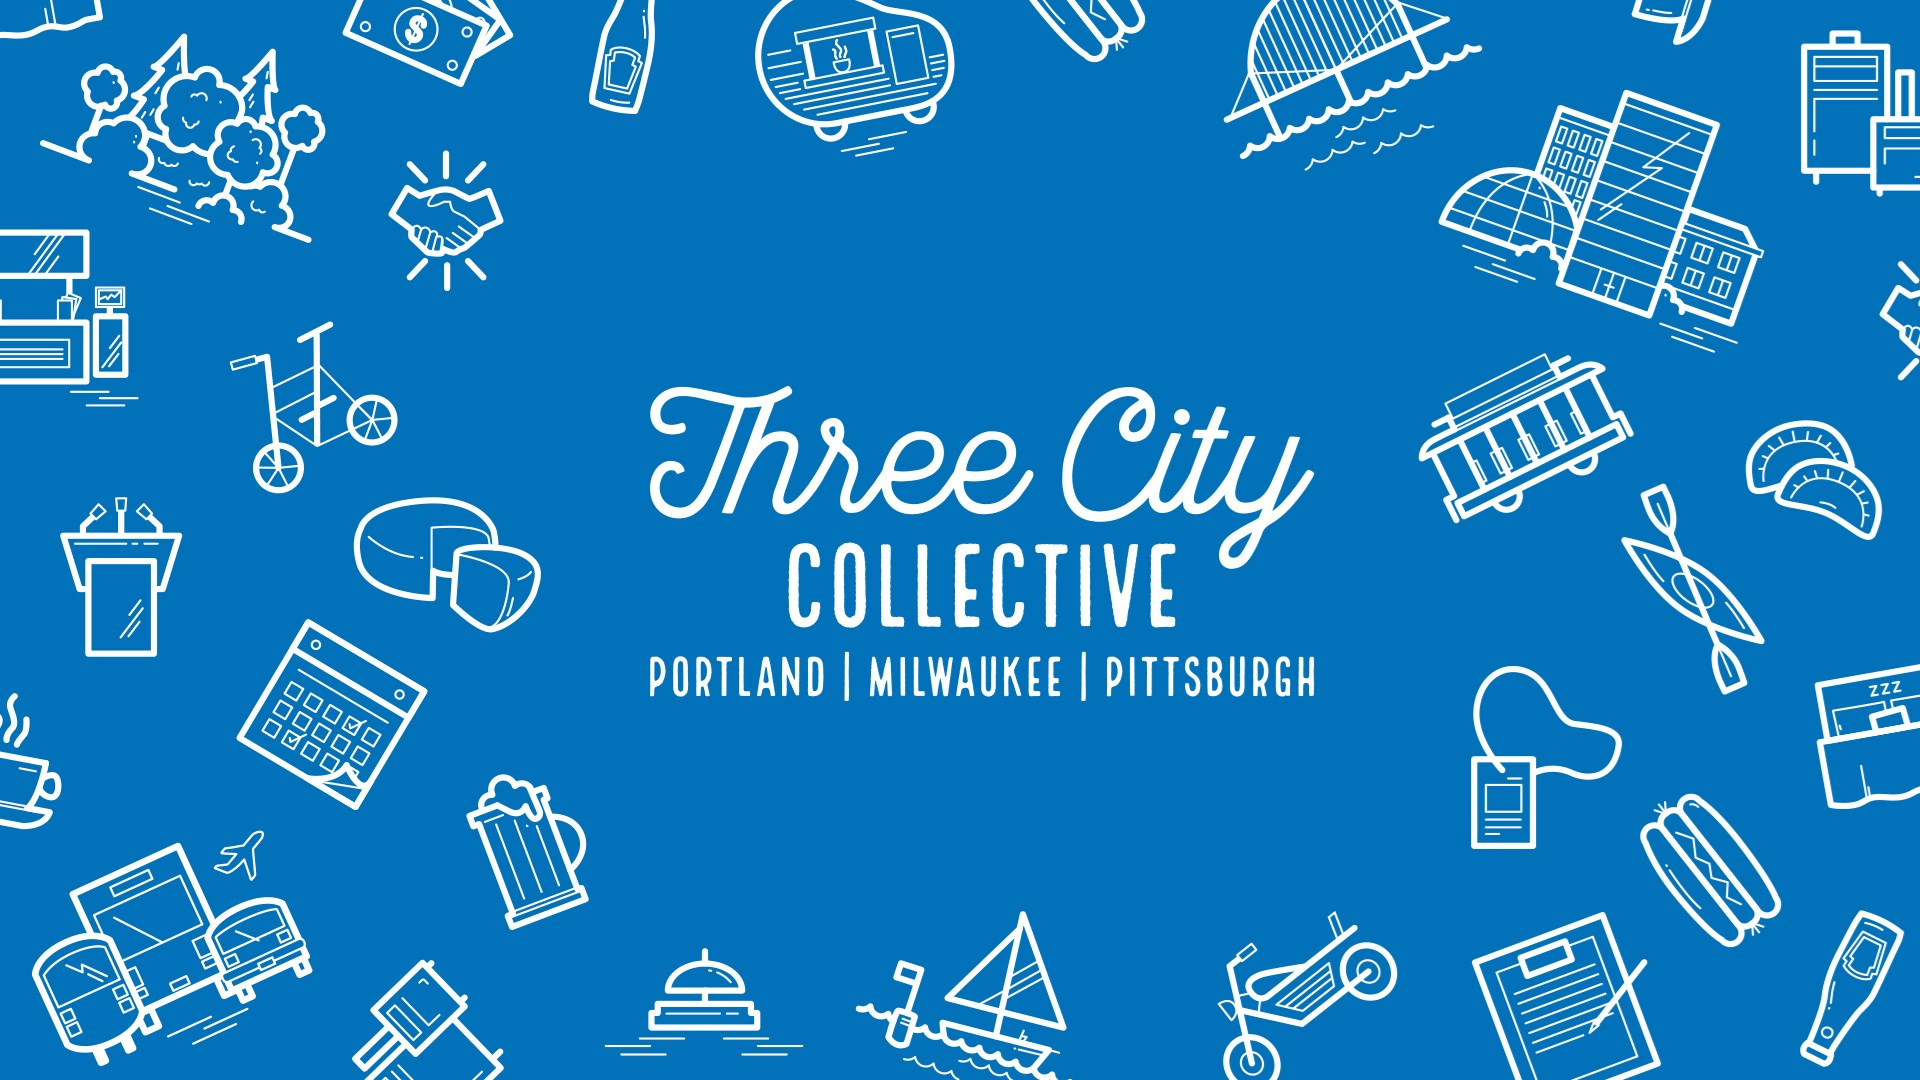 Three City Collective